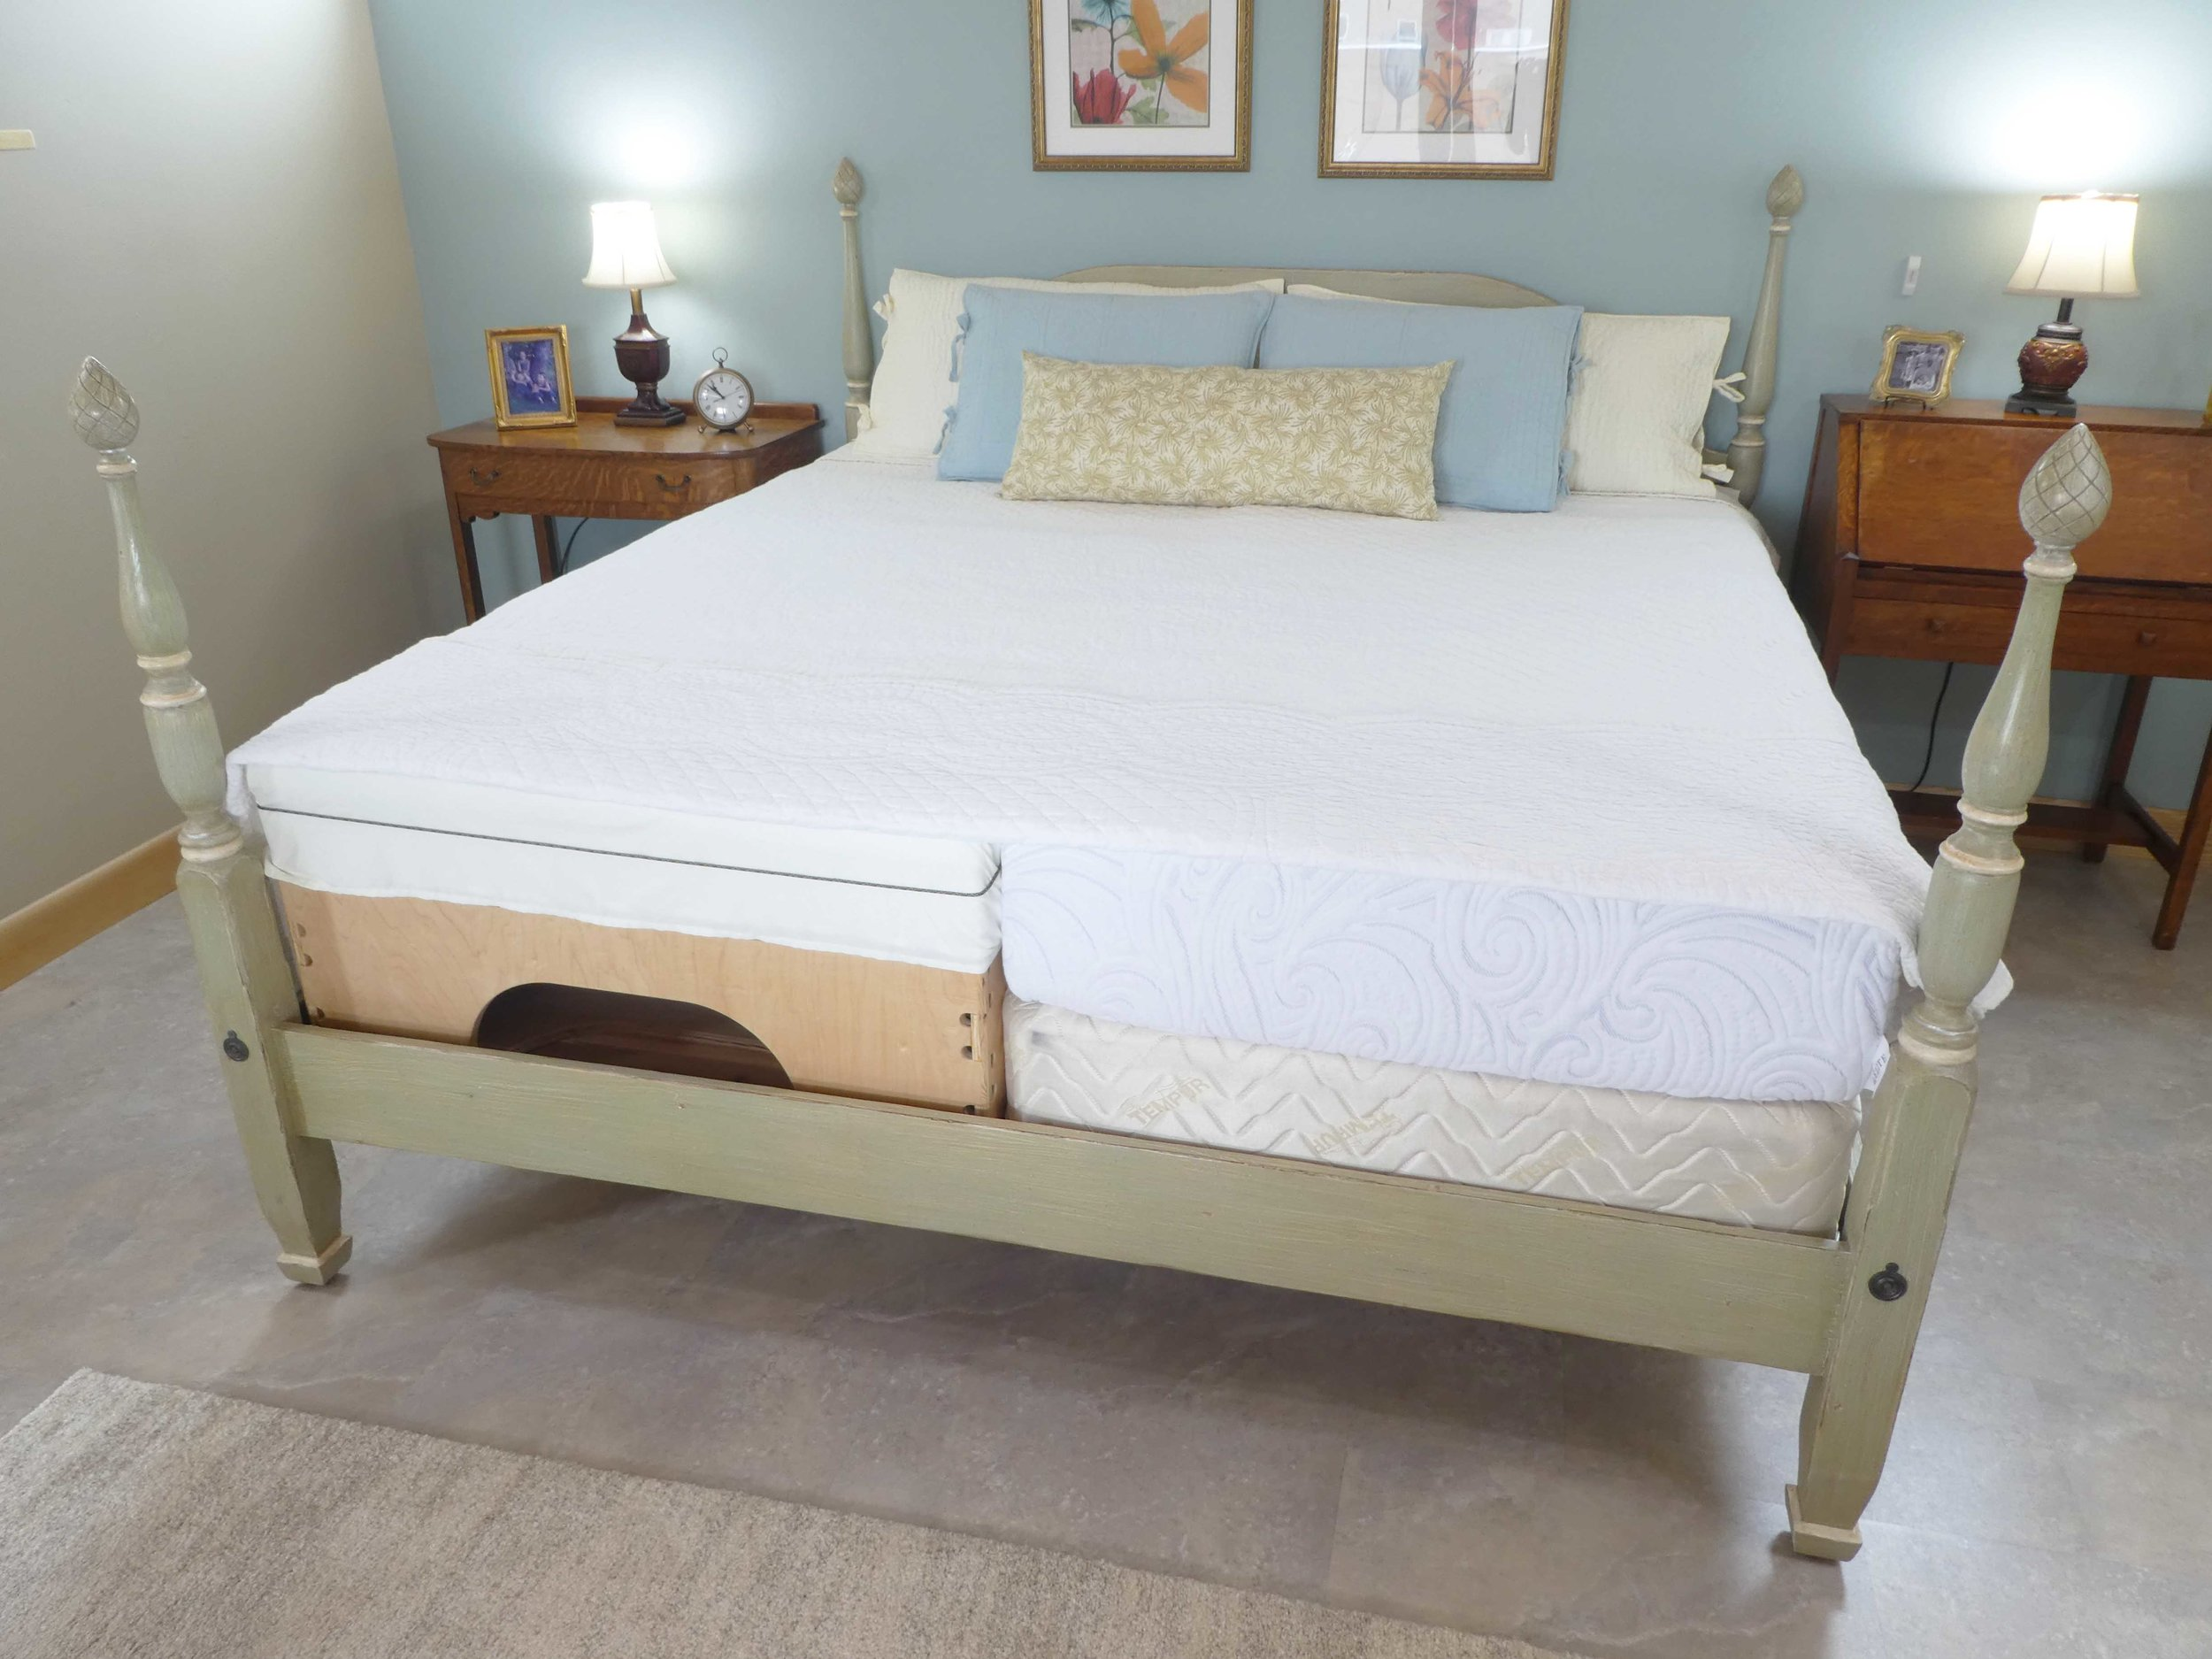 The end of the bedspread has been pulled up to reveal the microtraction bed,  box platform, and mattress underneath.